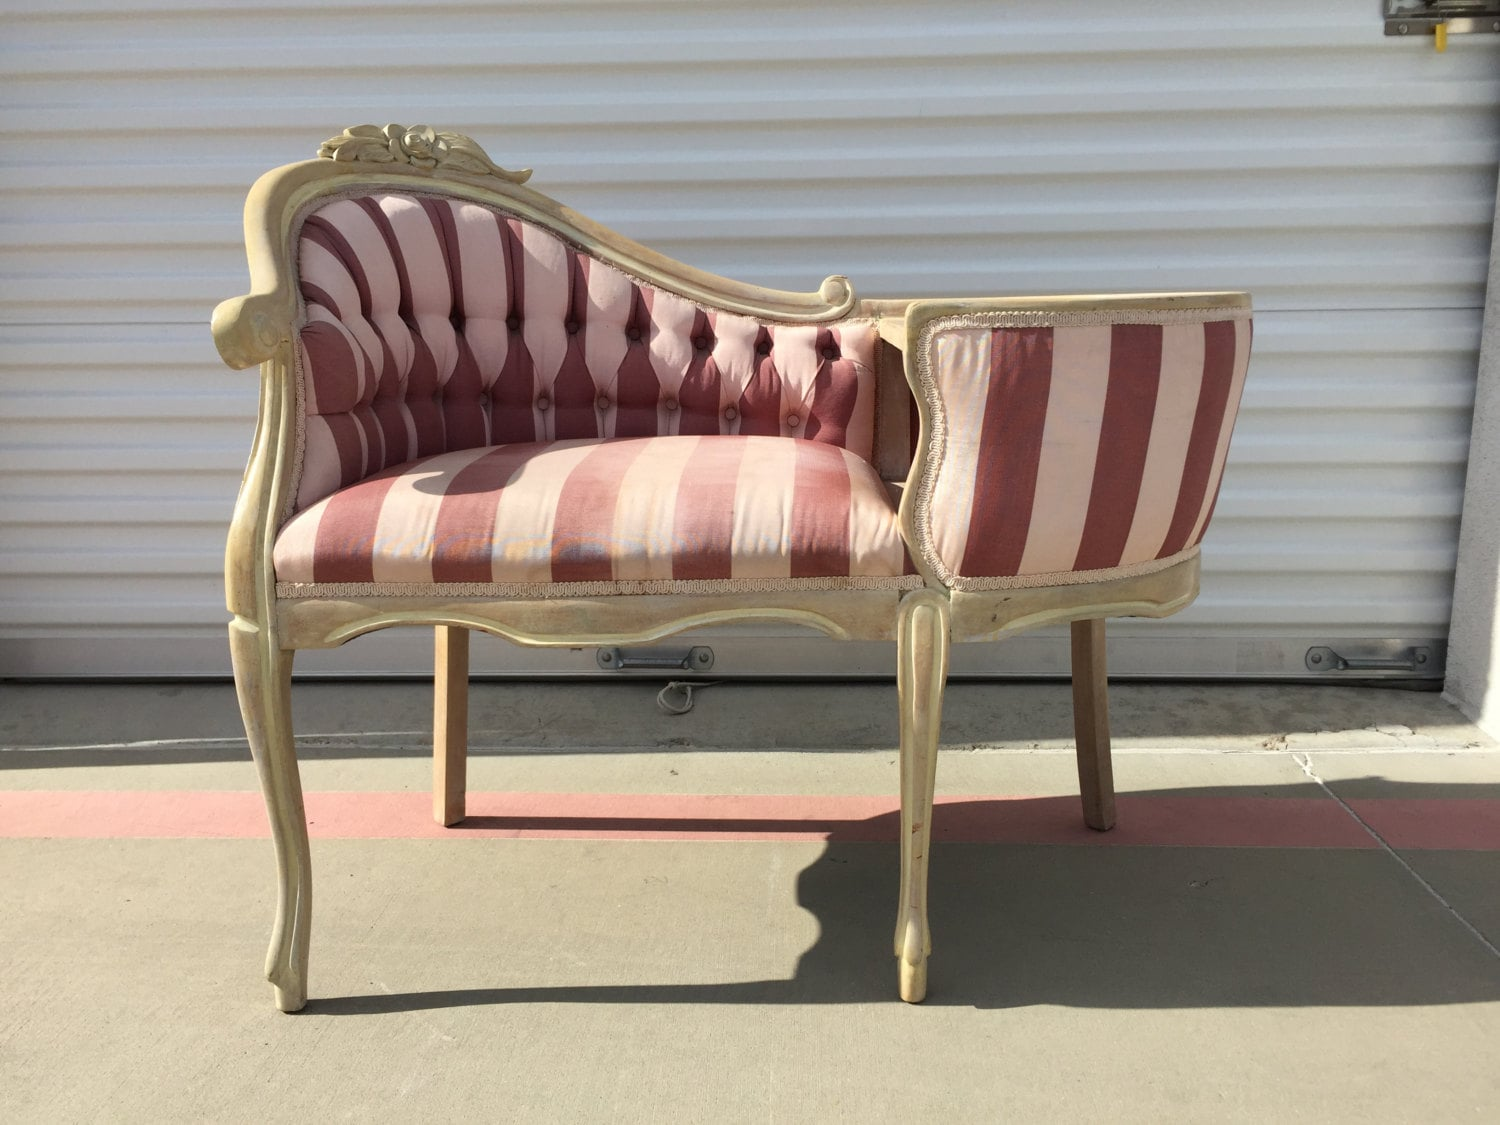 Entry Chair Gossip Bench Armchair Victorian French Provincial Furniture  Chaise Lounge Hollywood Regency Photo Shoot Storage Wood Antique